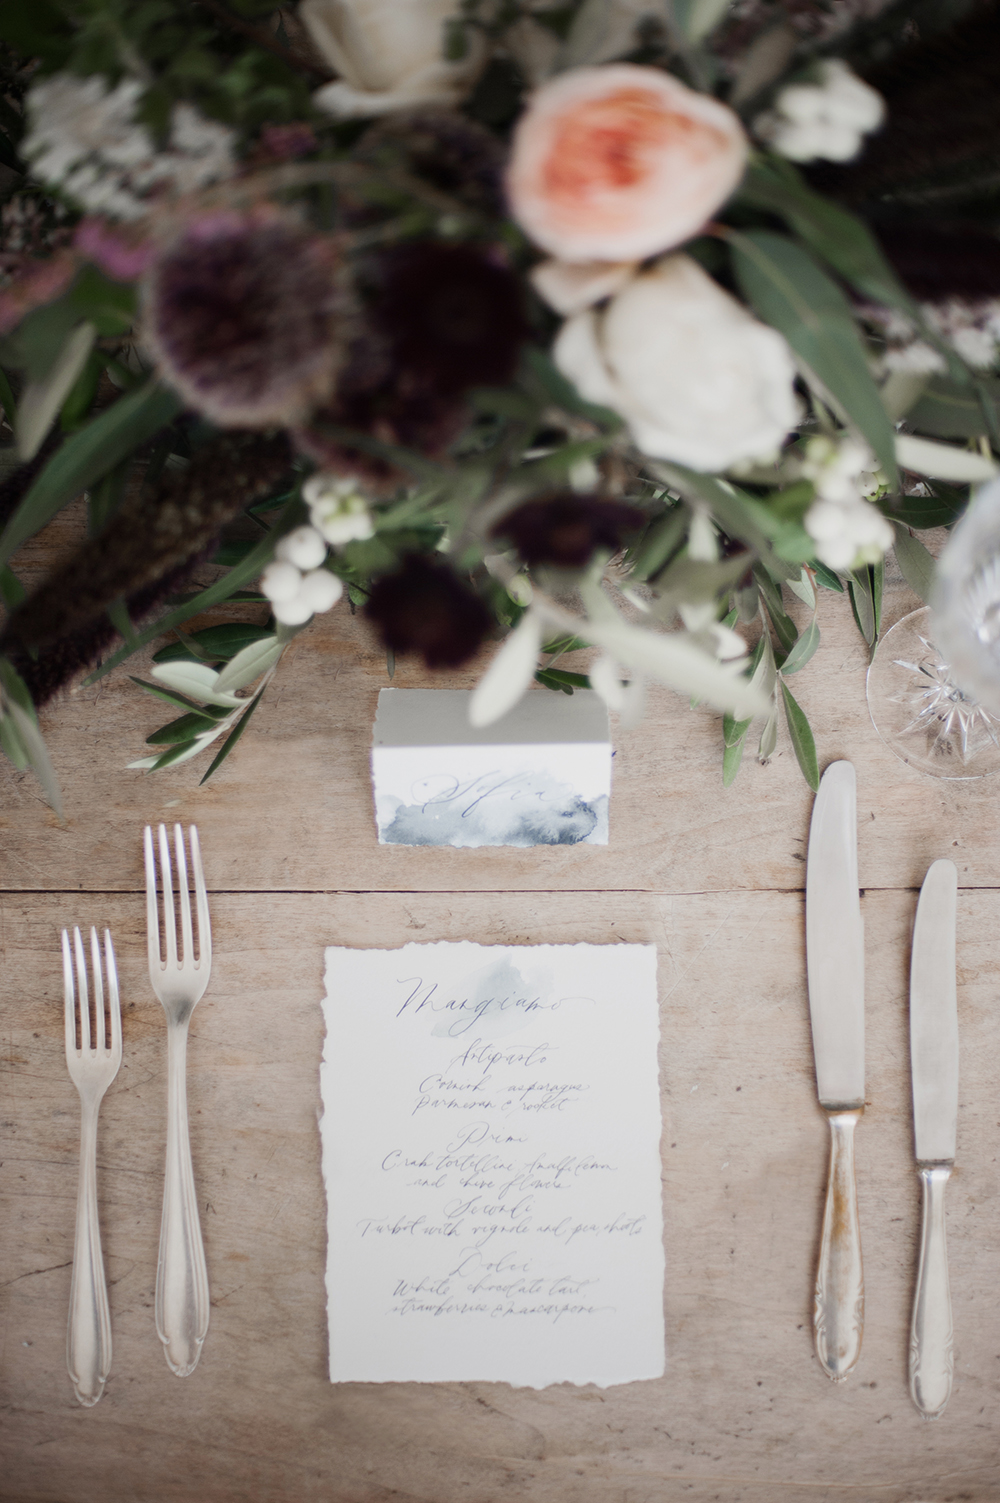 Puglia Wedding Creative Copy 0007